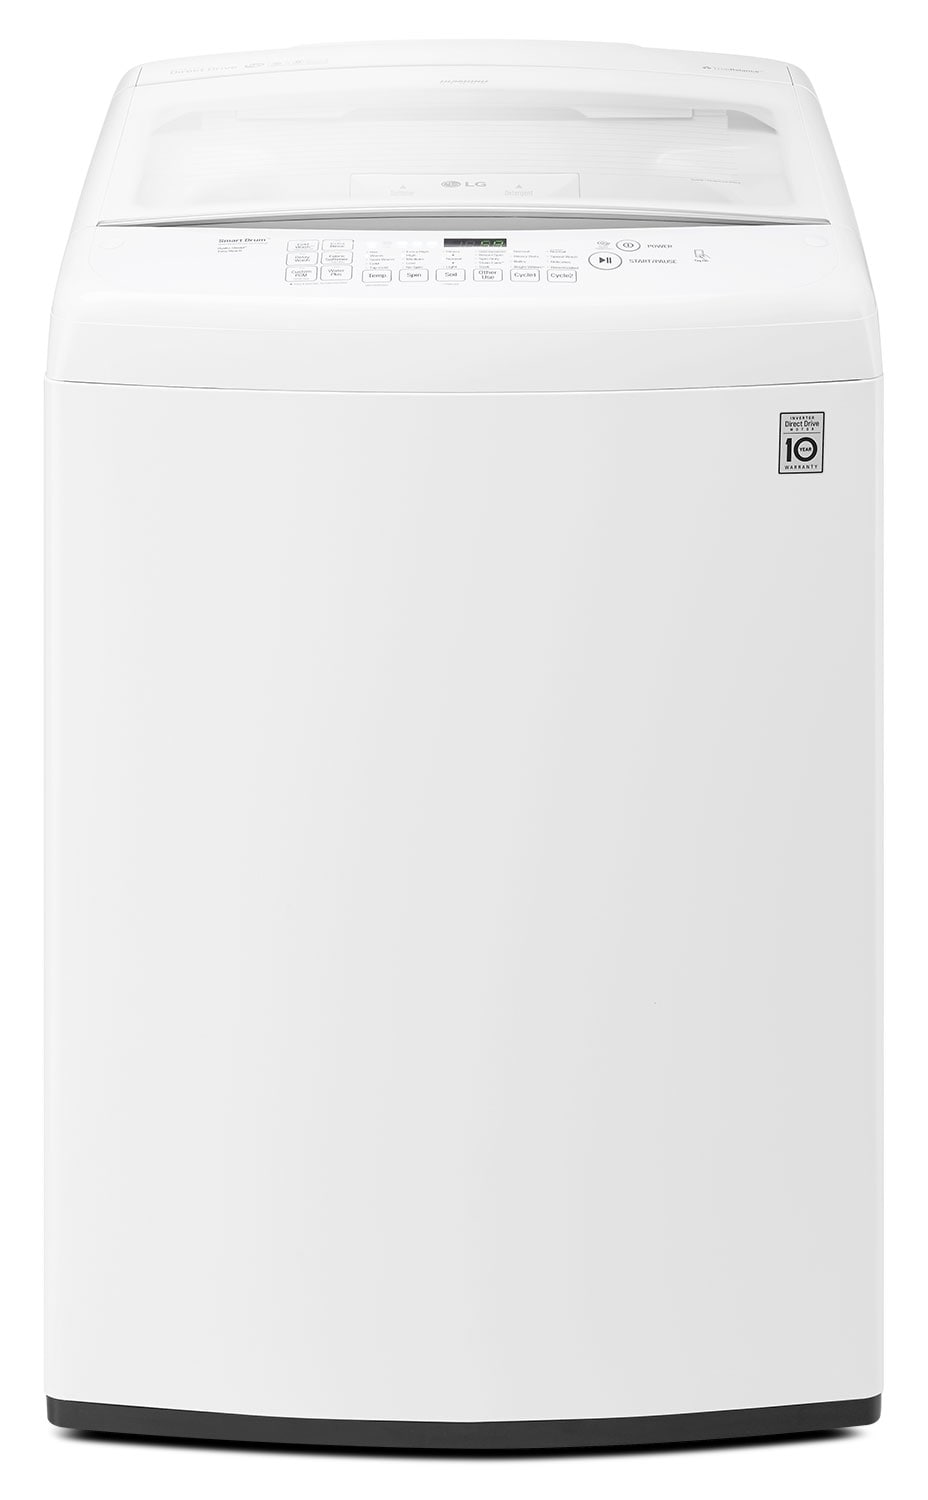 LG Appliances White Top-Load Electric Washer (5.2 Cu. Ft.) - WT1501CW